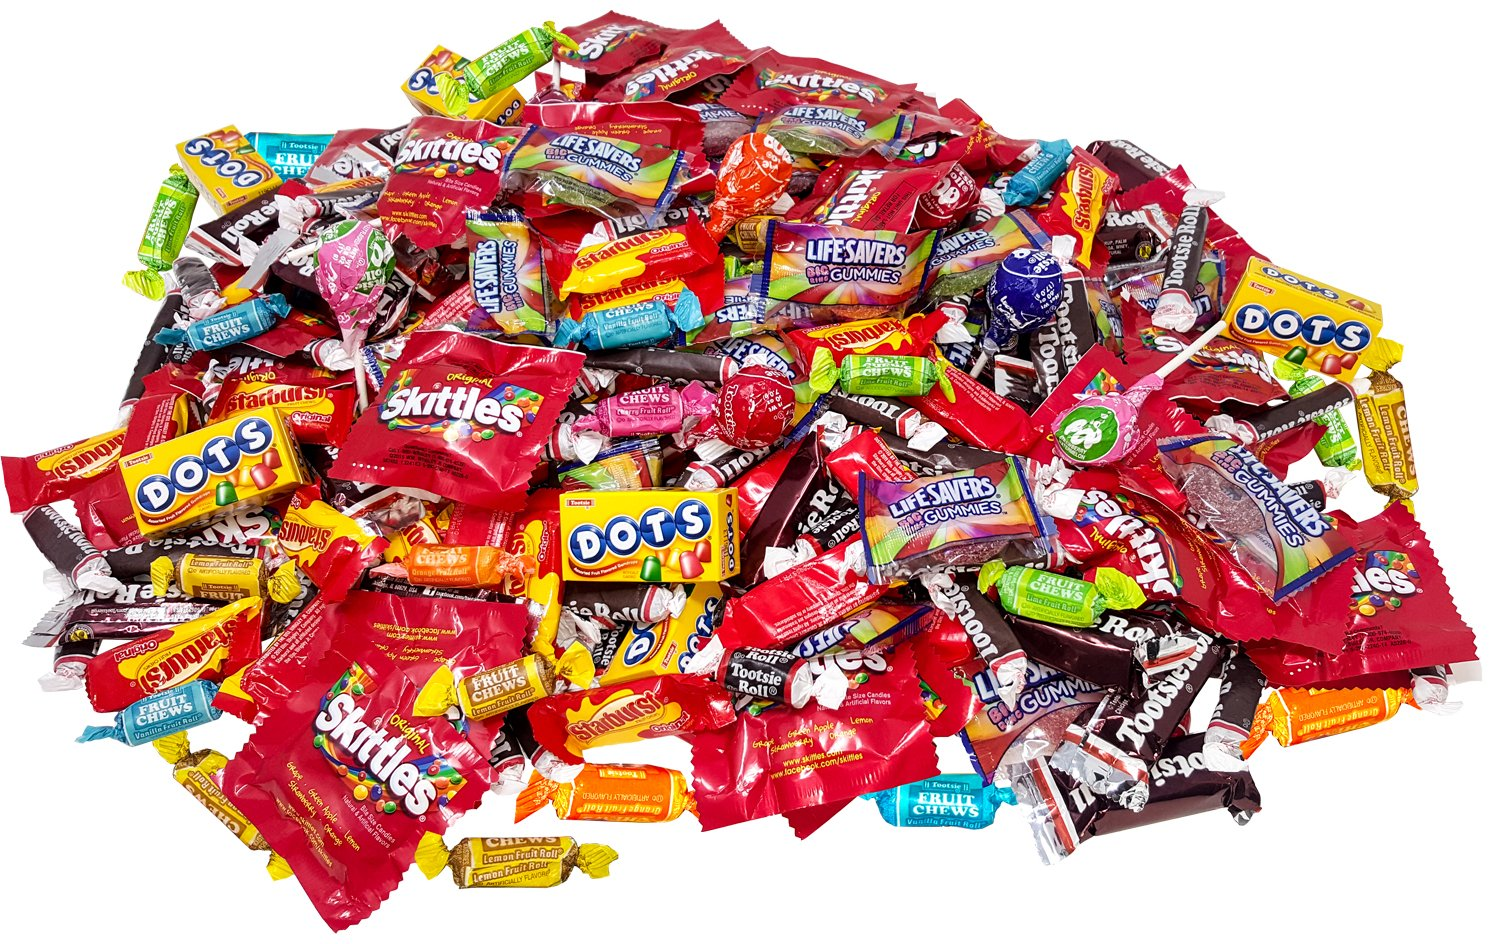 Assorted American Candy Classics Over 13 Favorite Flavors 11 Lb Variety Bulk Value Pack Skittles Tootsies Starburst Lifesavers Gummies And More (176 oz)